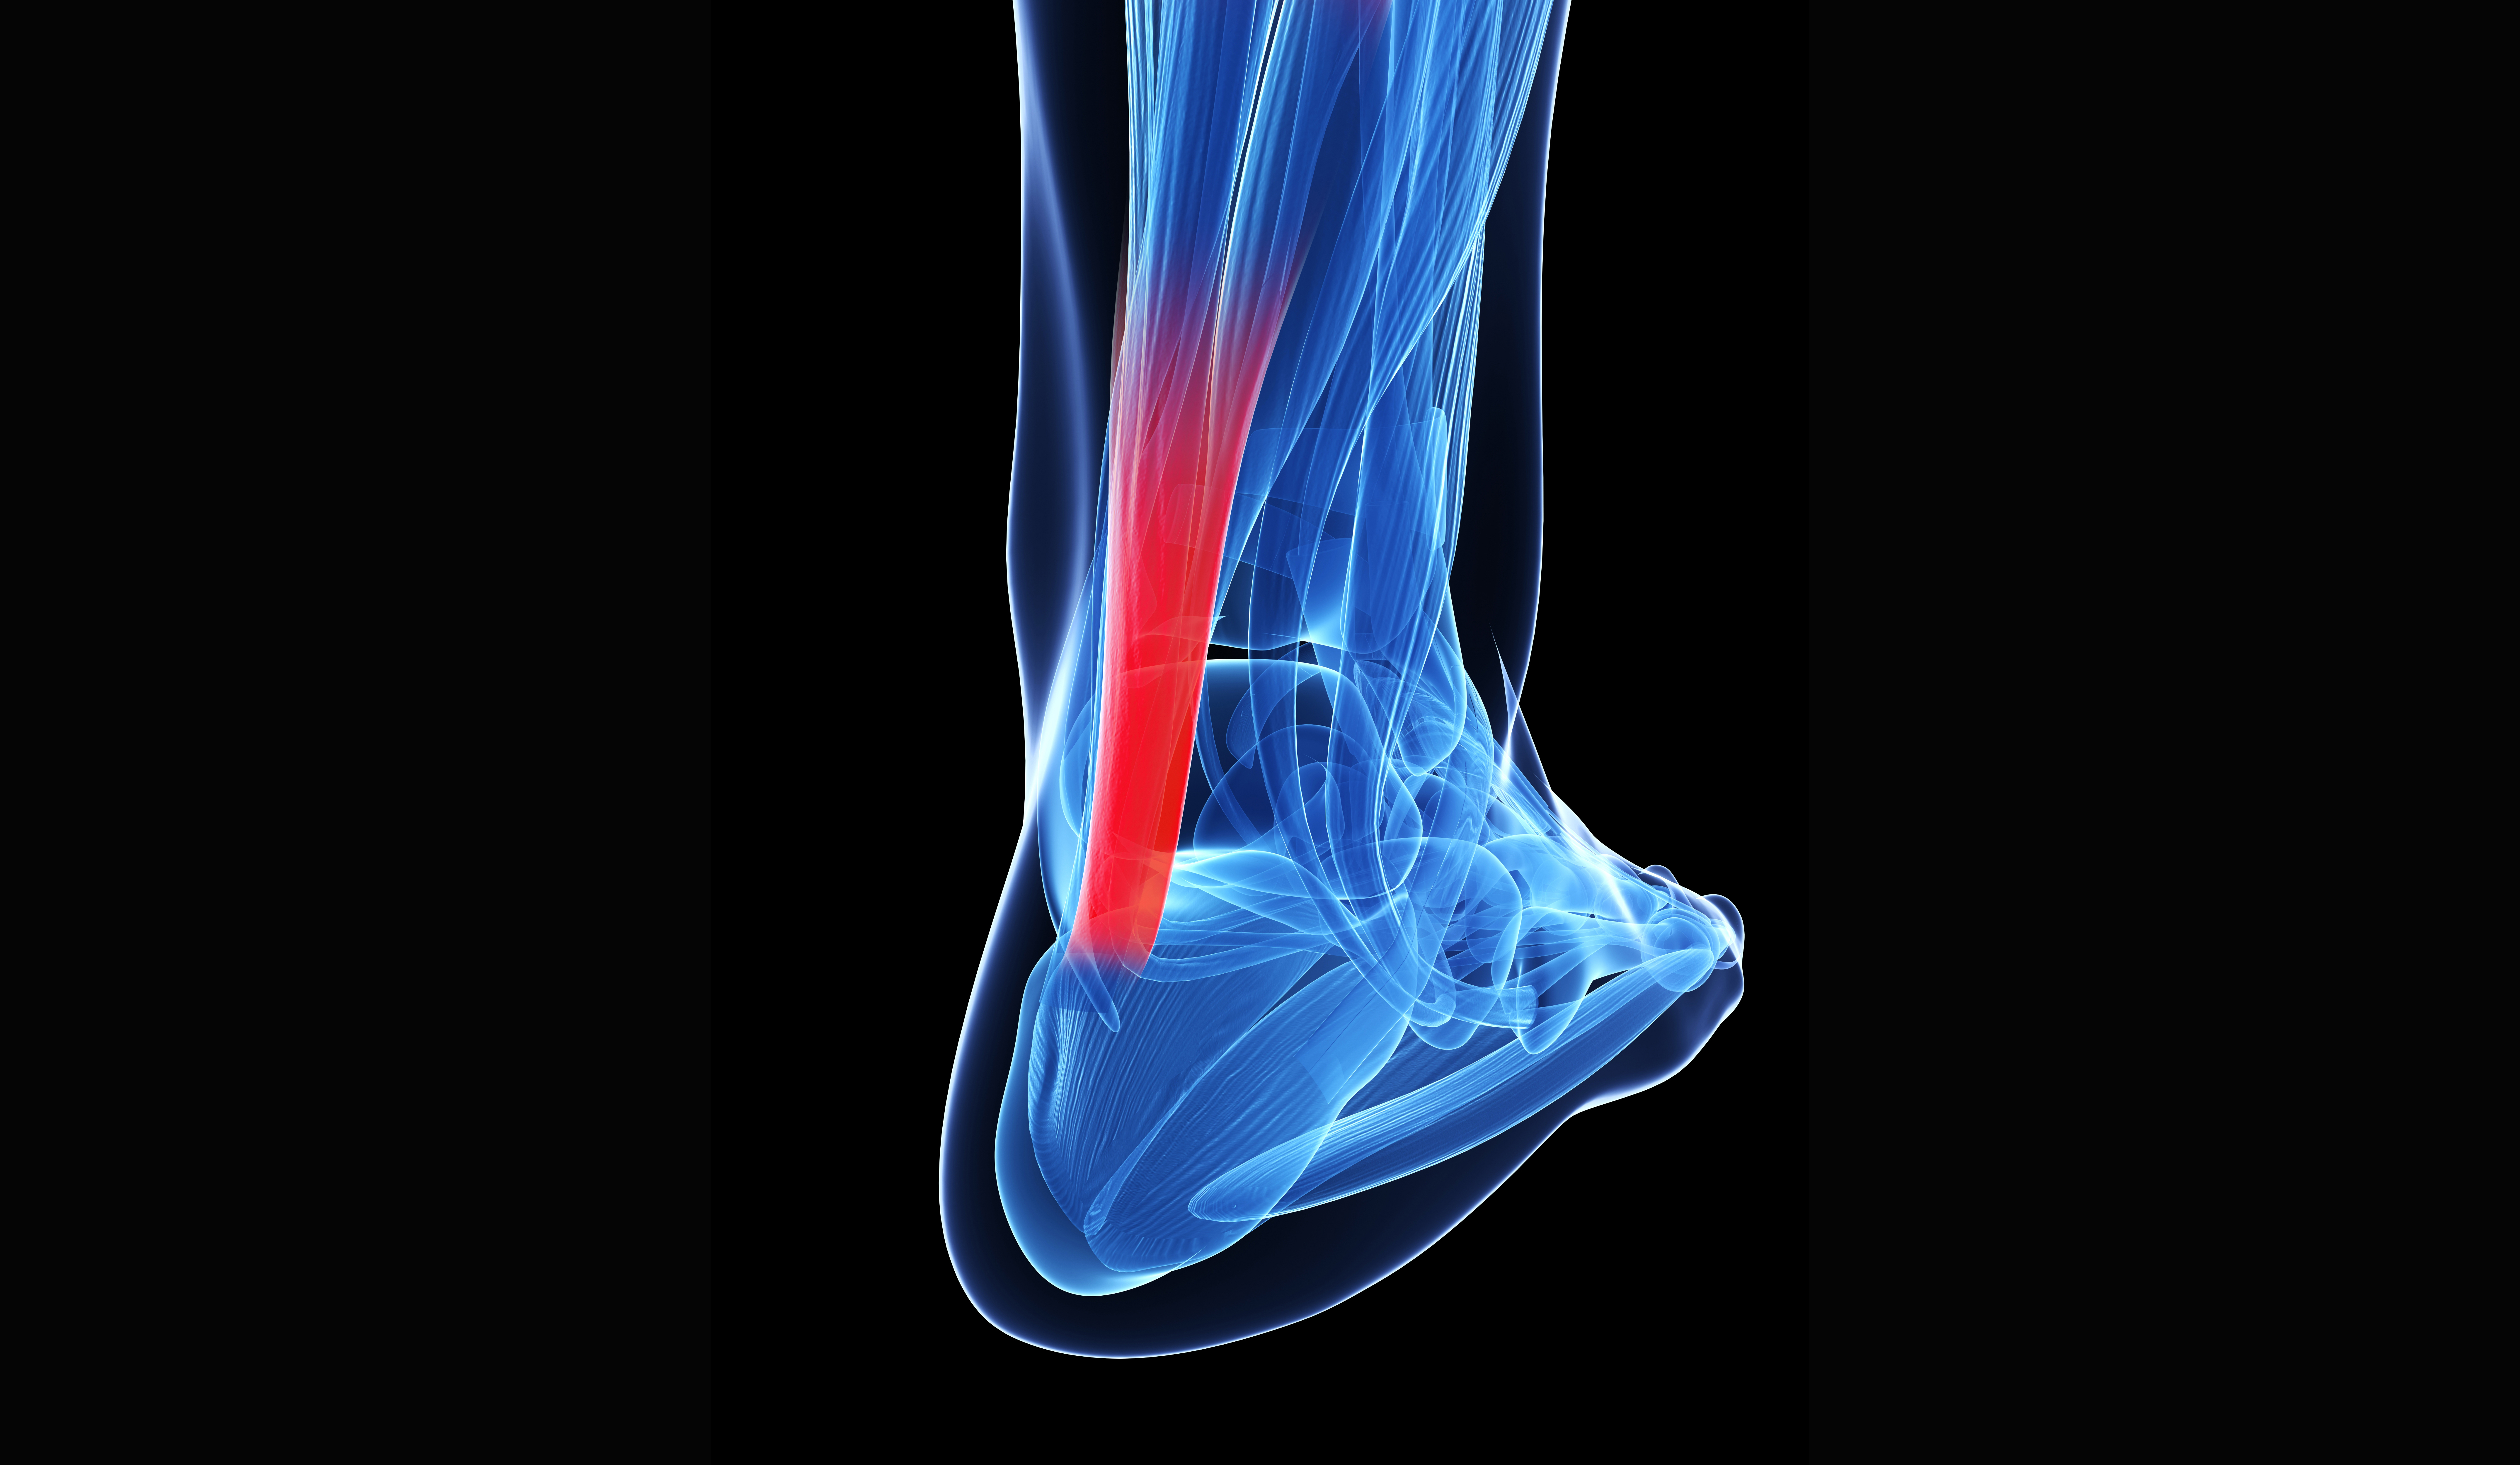 3D illustration of the achilles tendon in human foot